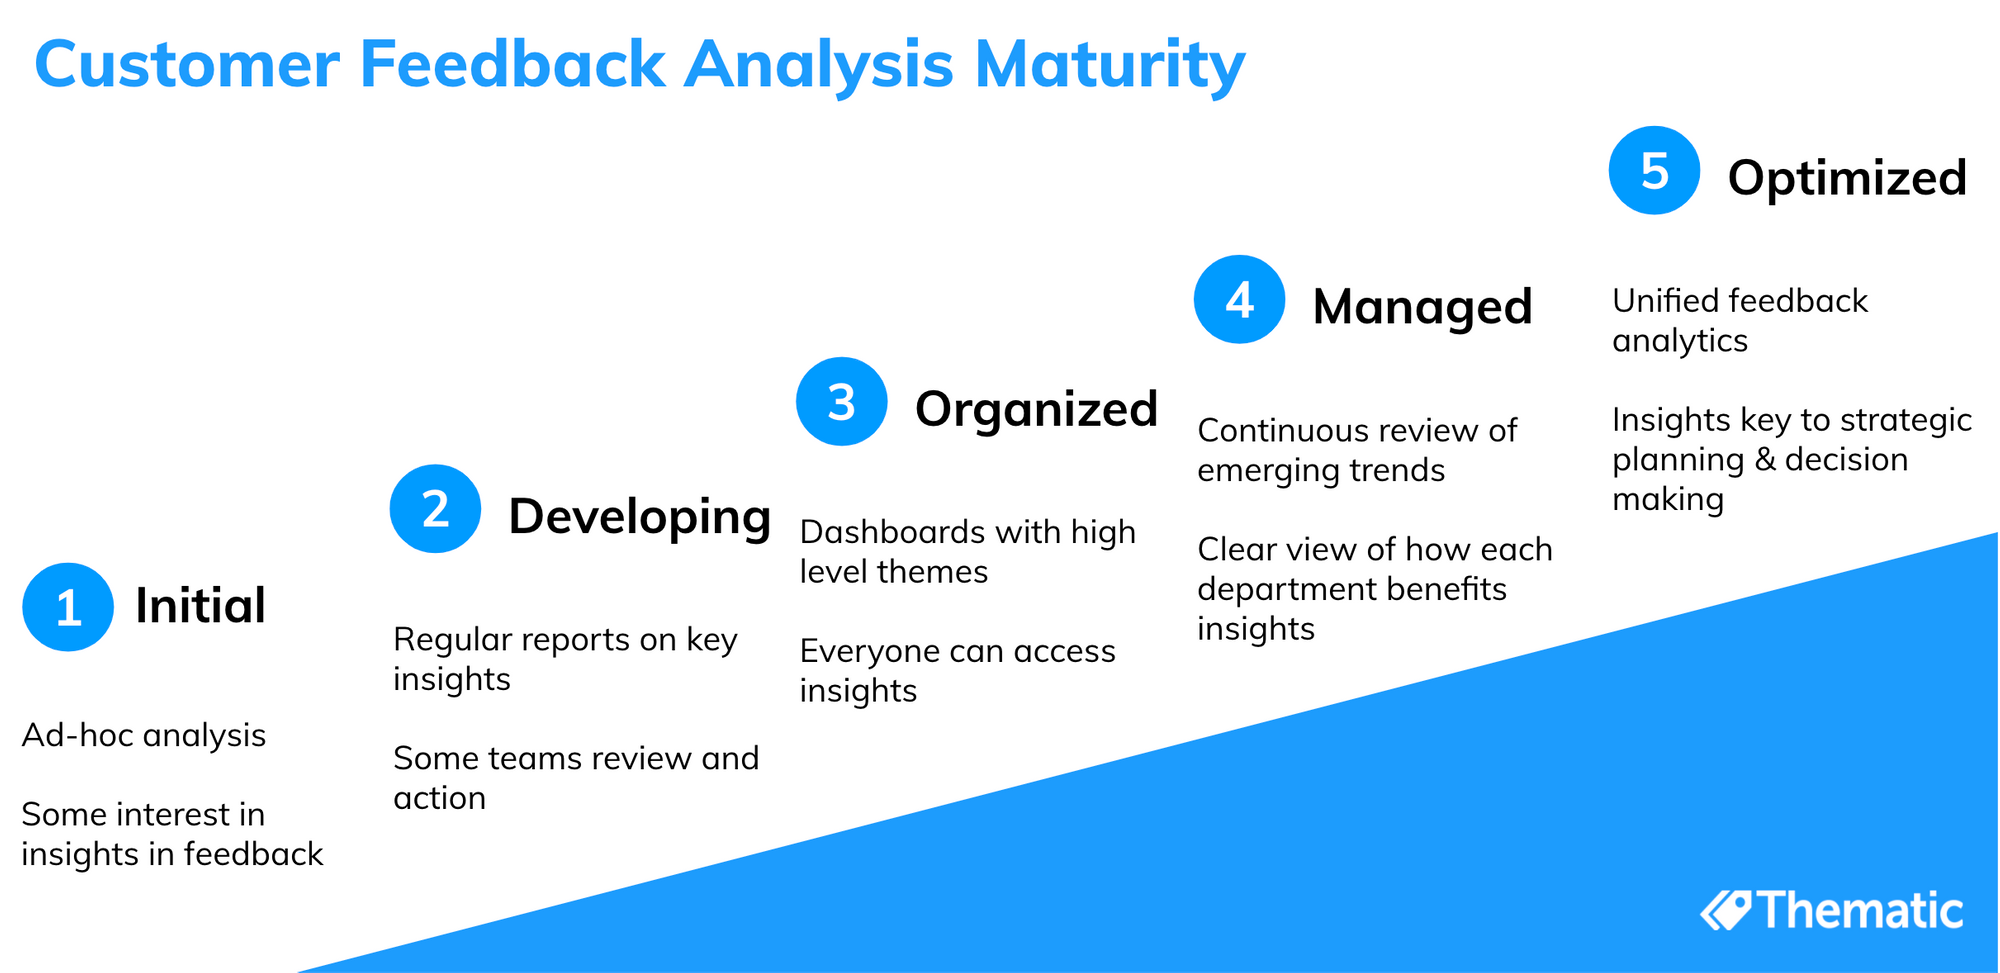 Our draft outline of a customer feedback analysis maturity model